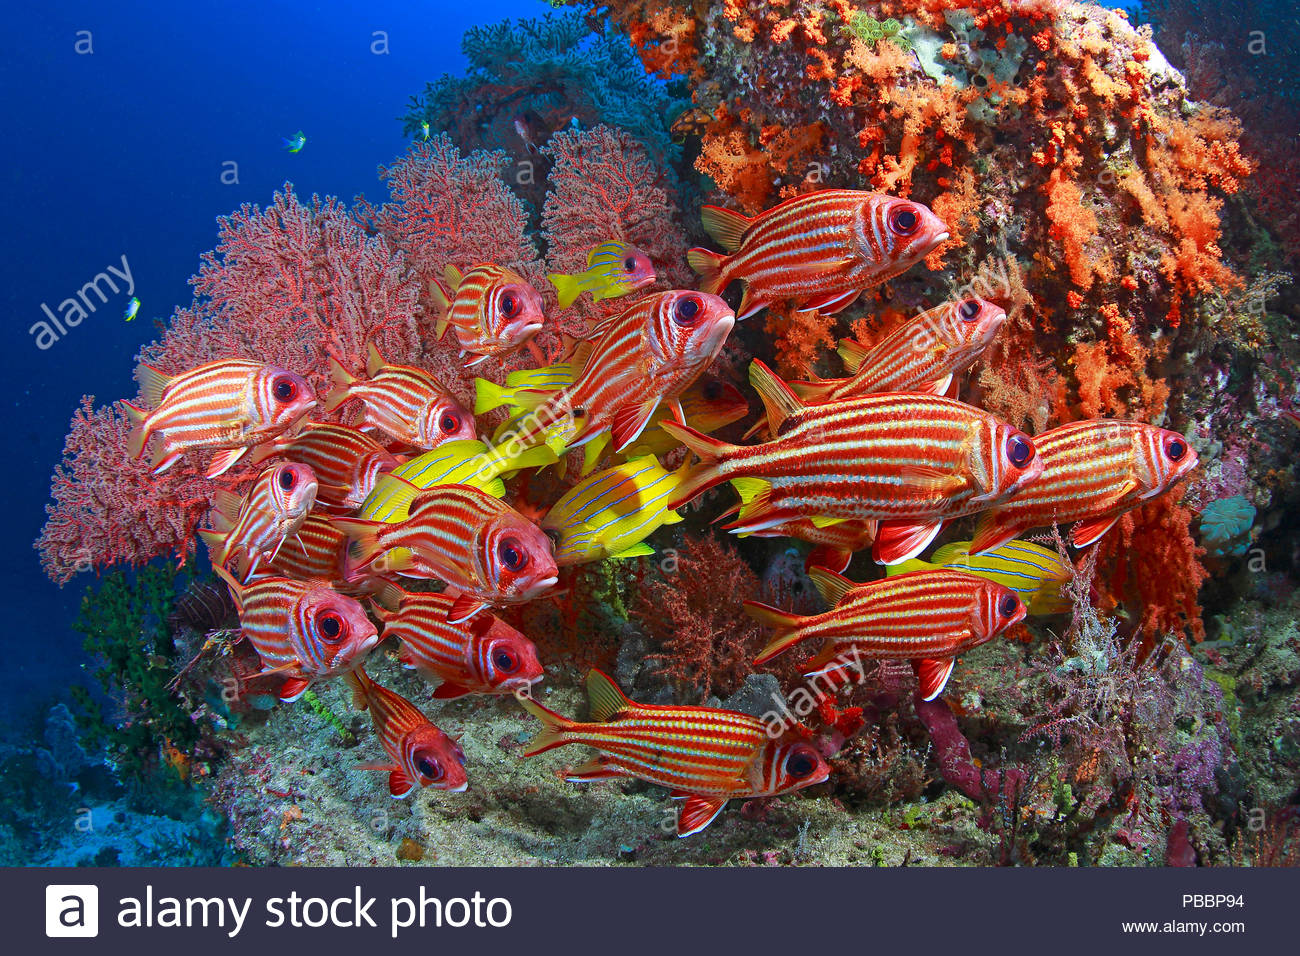 Colourful reef scene, Redcoats (Sargocentron rubrum) and Blue-striped snapper (Lutjanus kasmira), Raja Ampat, Irian Jaya, Indonesia - Stock Image